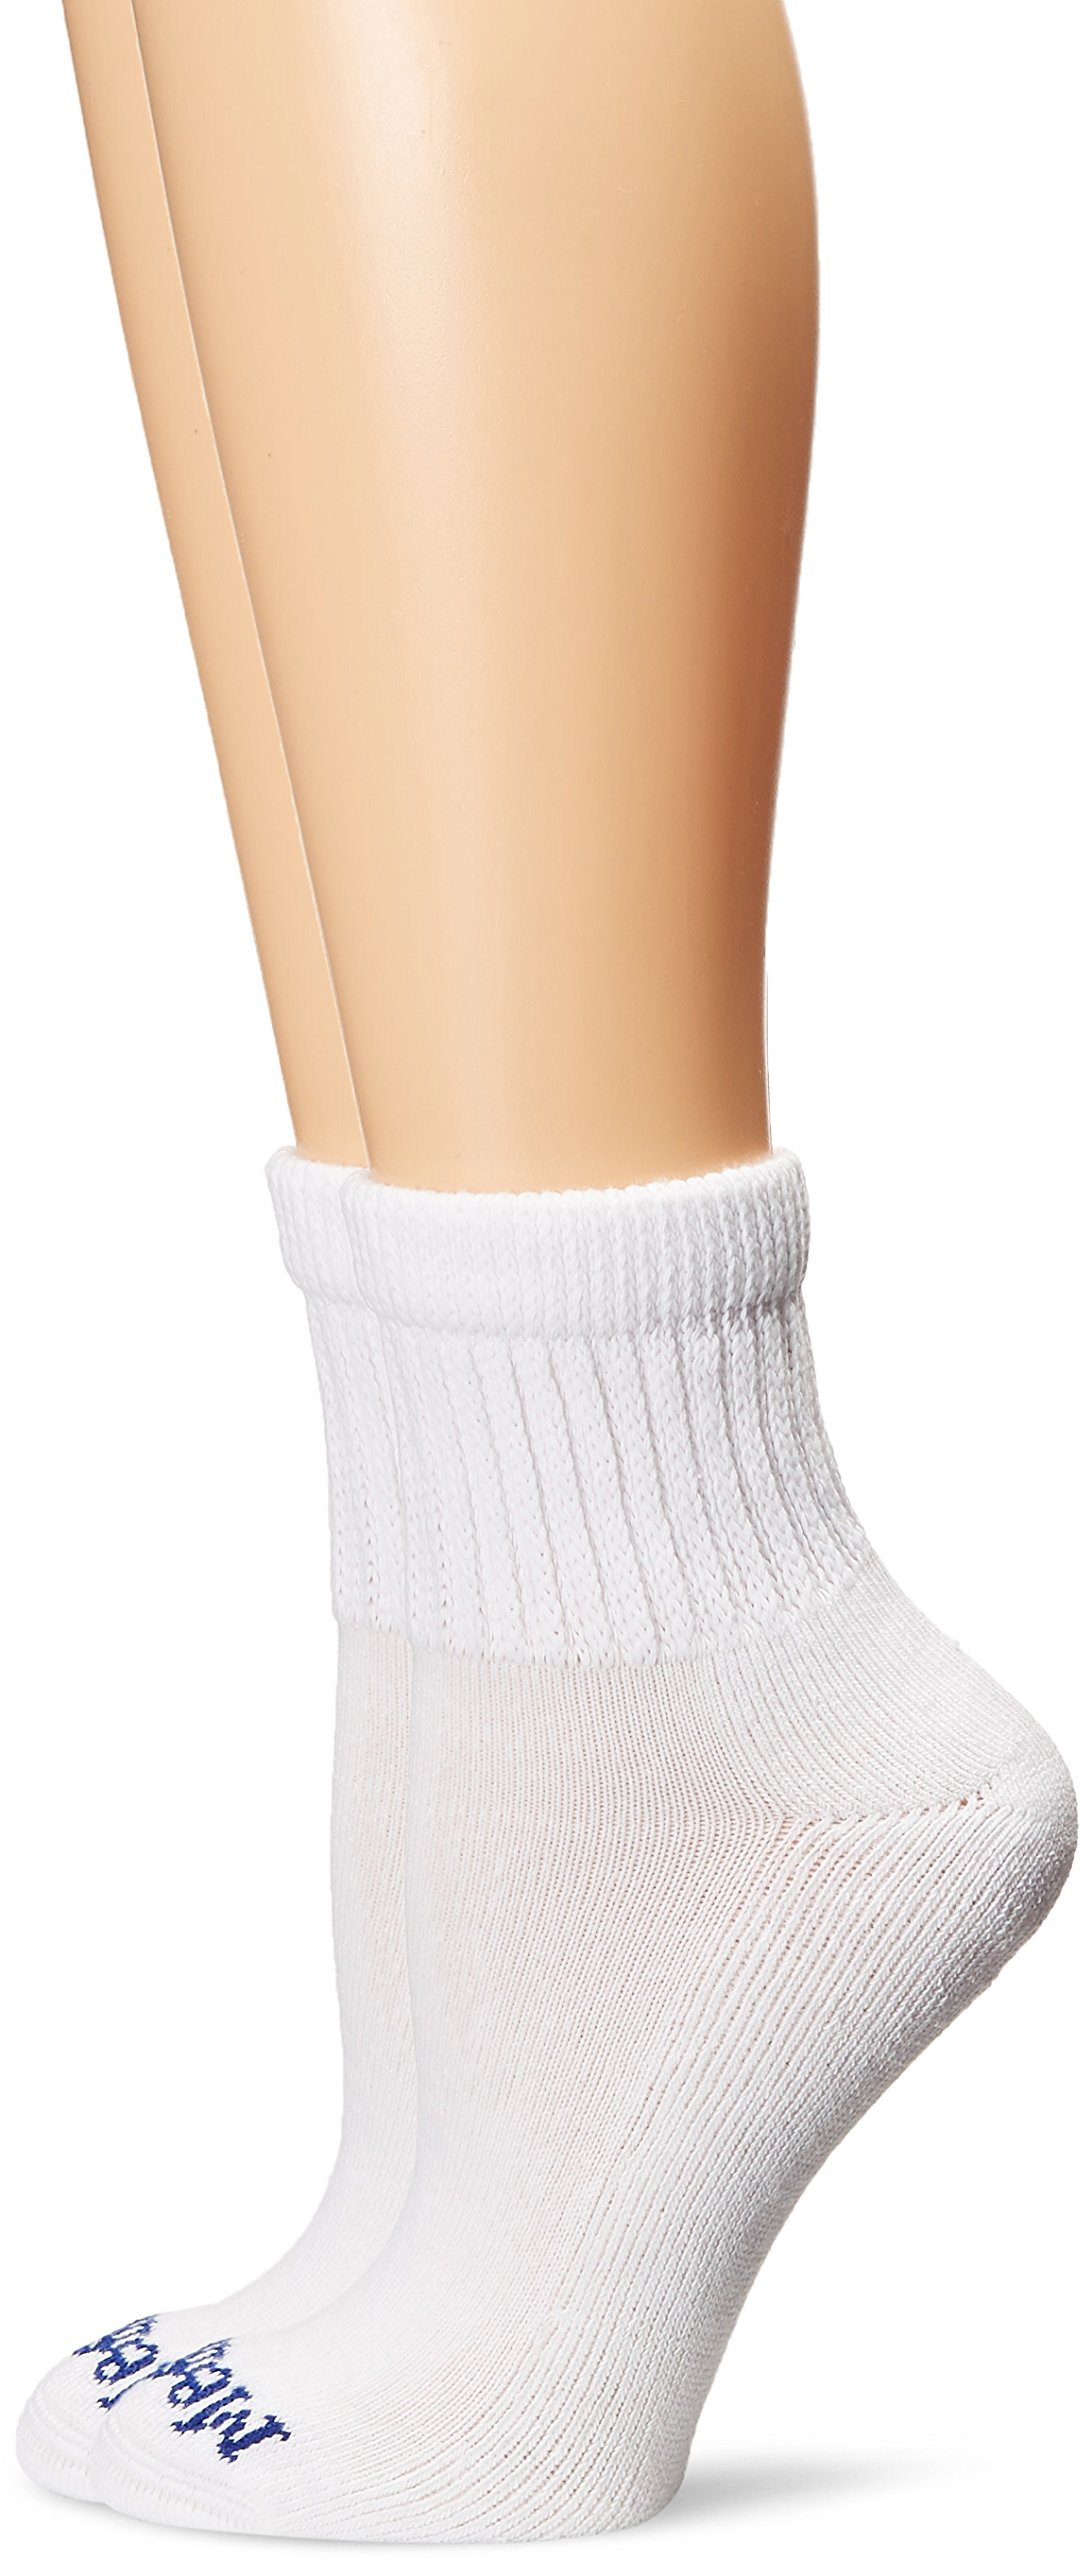 PEDS Women's Diabetic Quarter Socks with Non-Binding Funnel Top 2 Pairs, White, 7-10